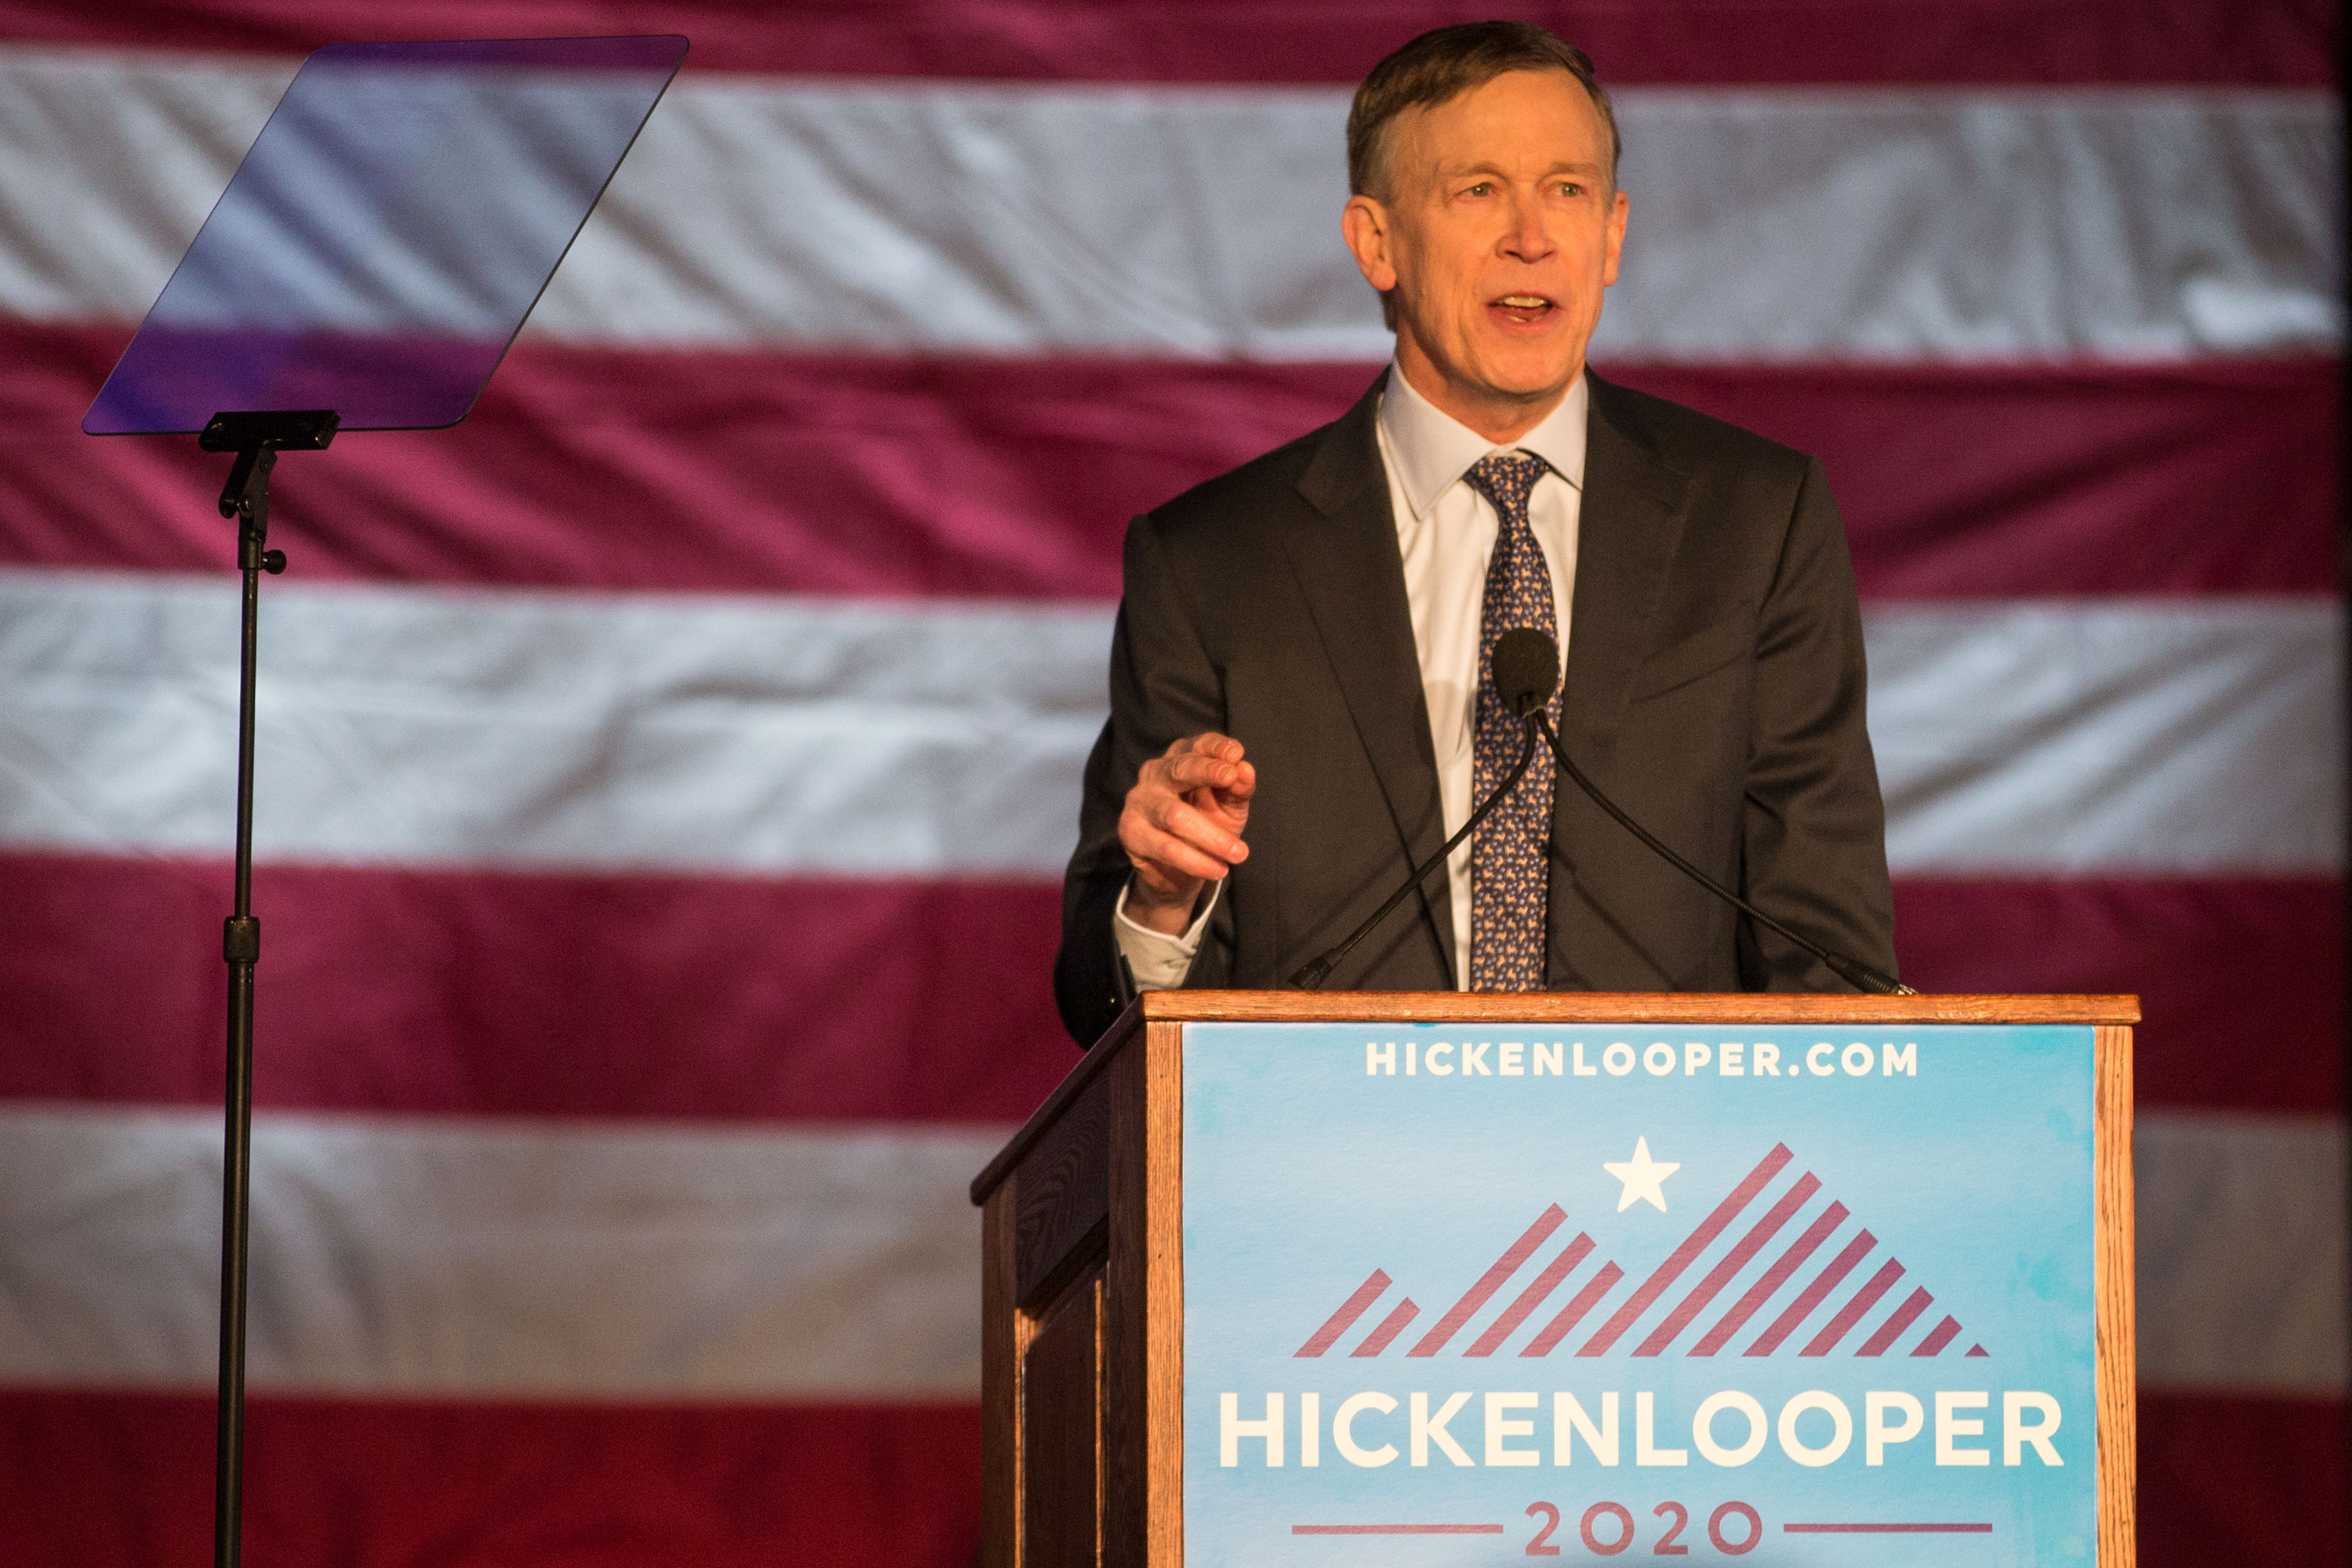 John Hickenlooper to end 2020 presidential bid on Thursday, source says